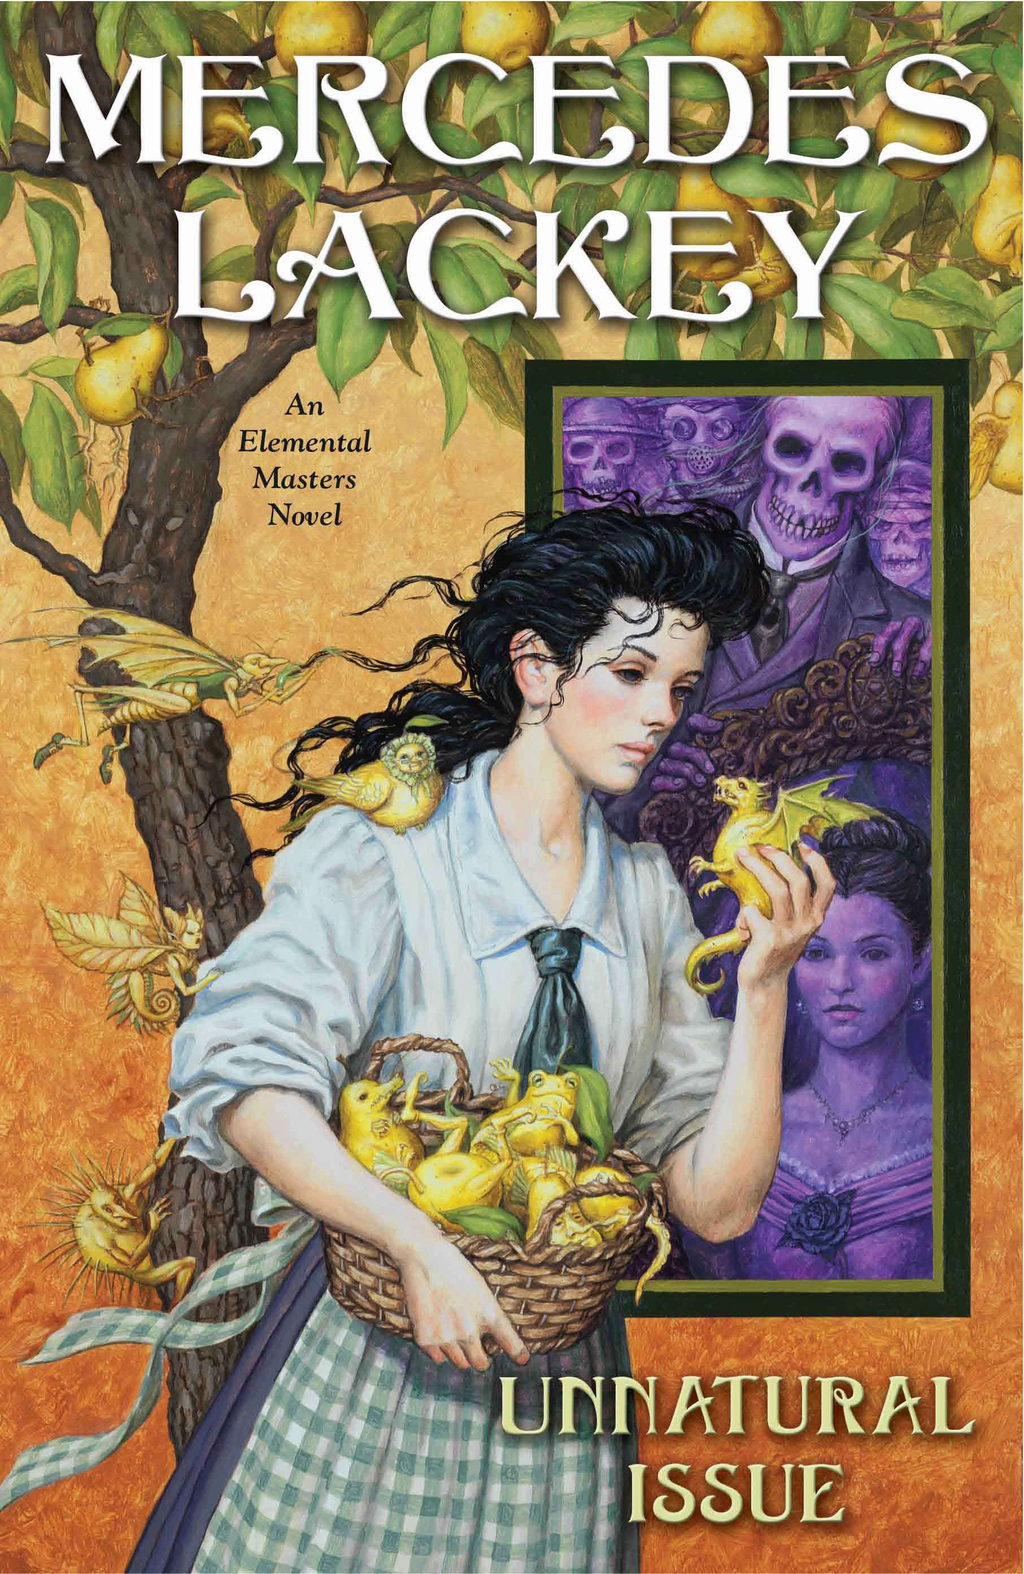 Unnatural Issue: An Elemental Masters Novel By: Mercedes Lackey